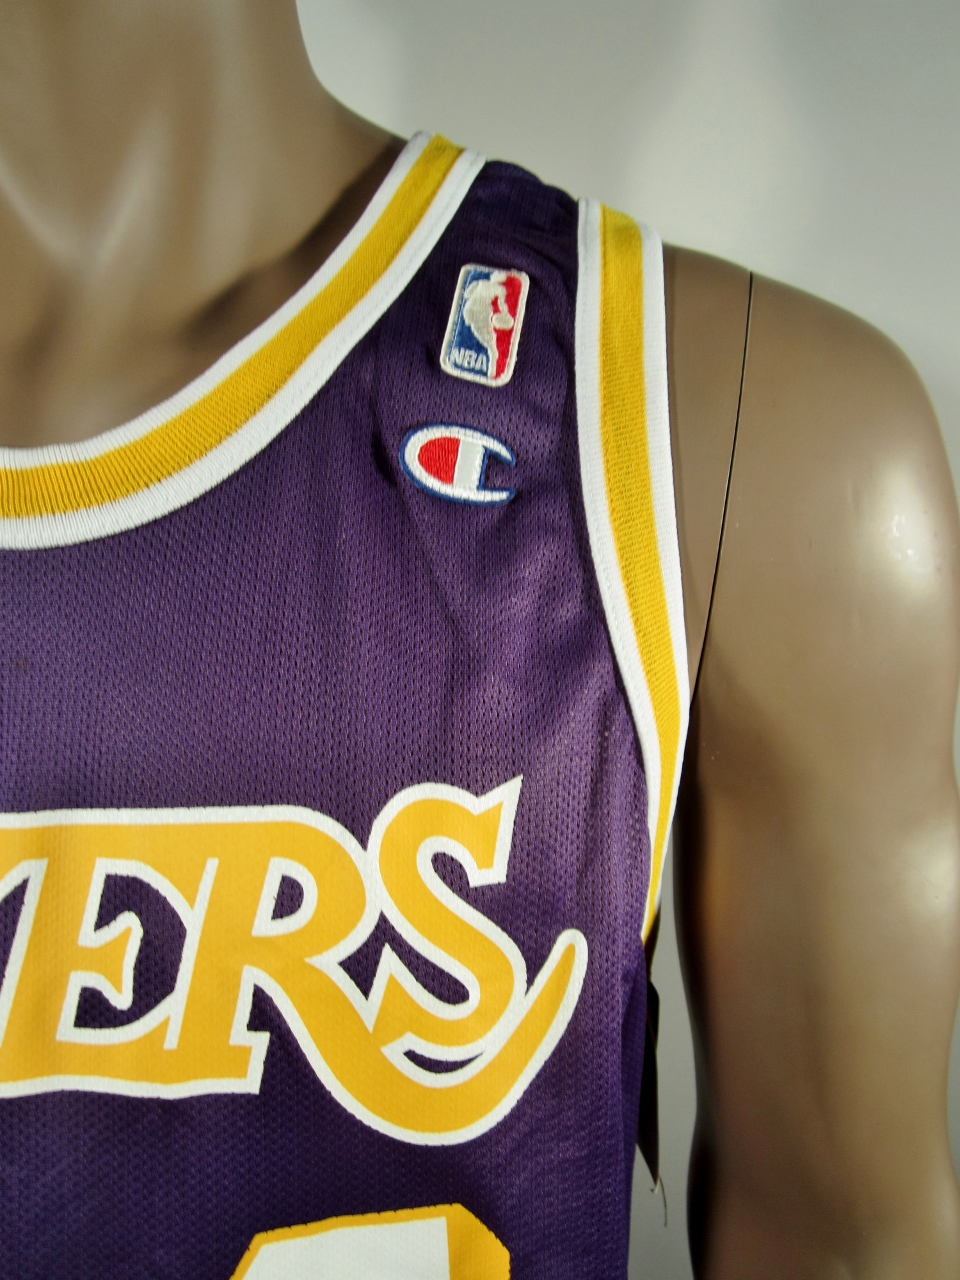 ... Shaquille O Neal Los Angeles Lakers Champion Jersey NWT - Thumbnail ... 2a04e45ac